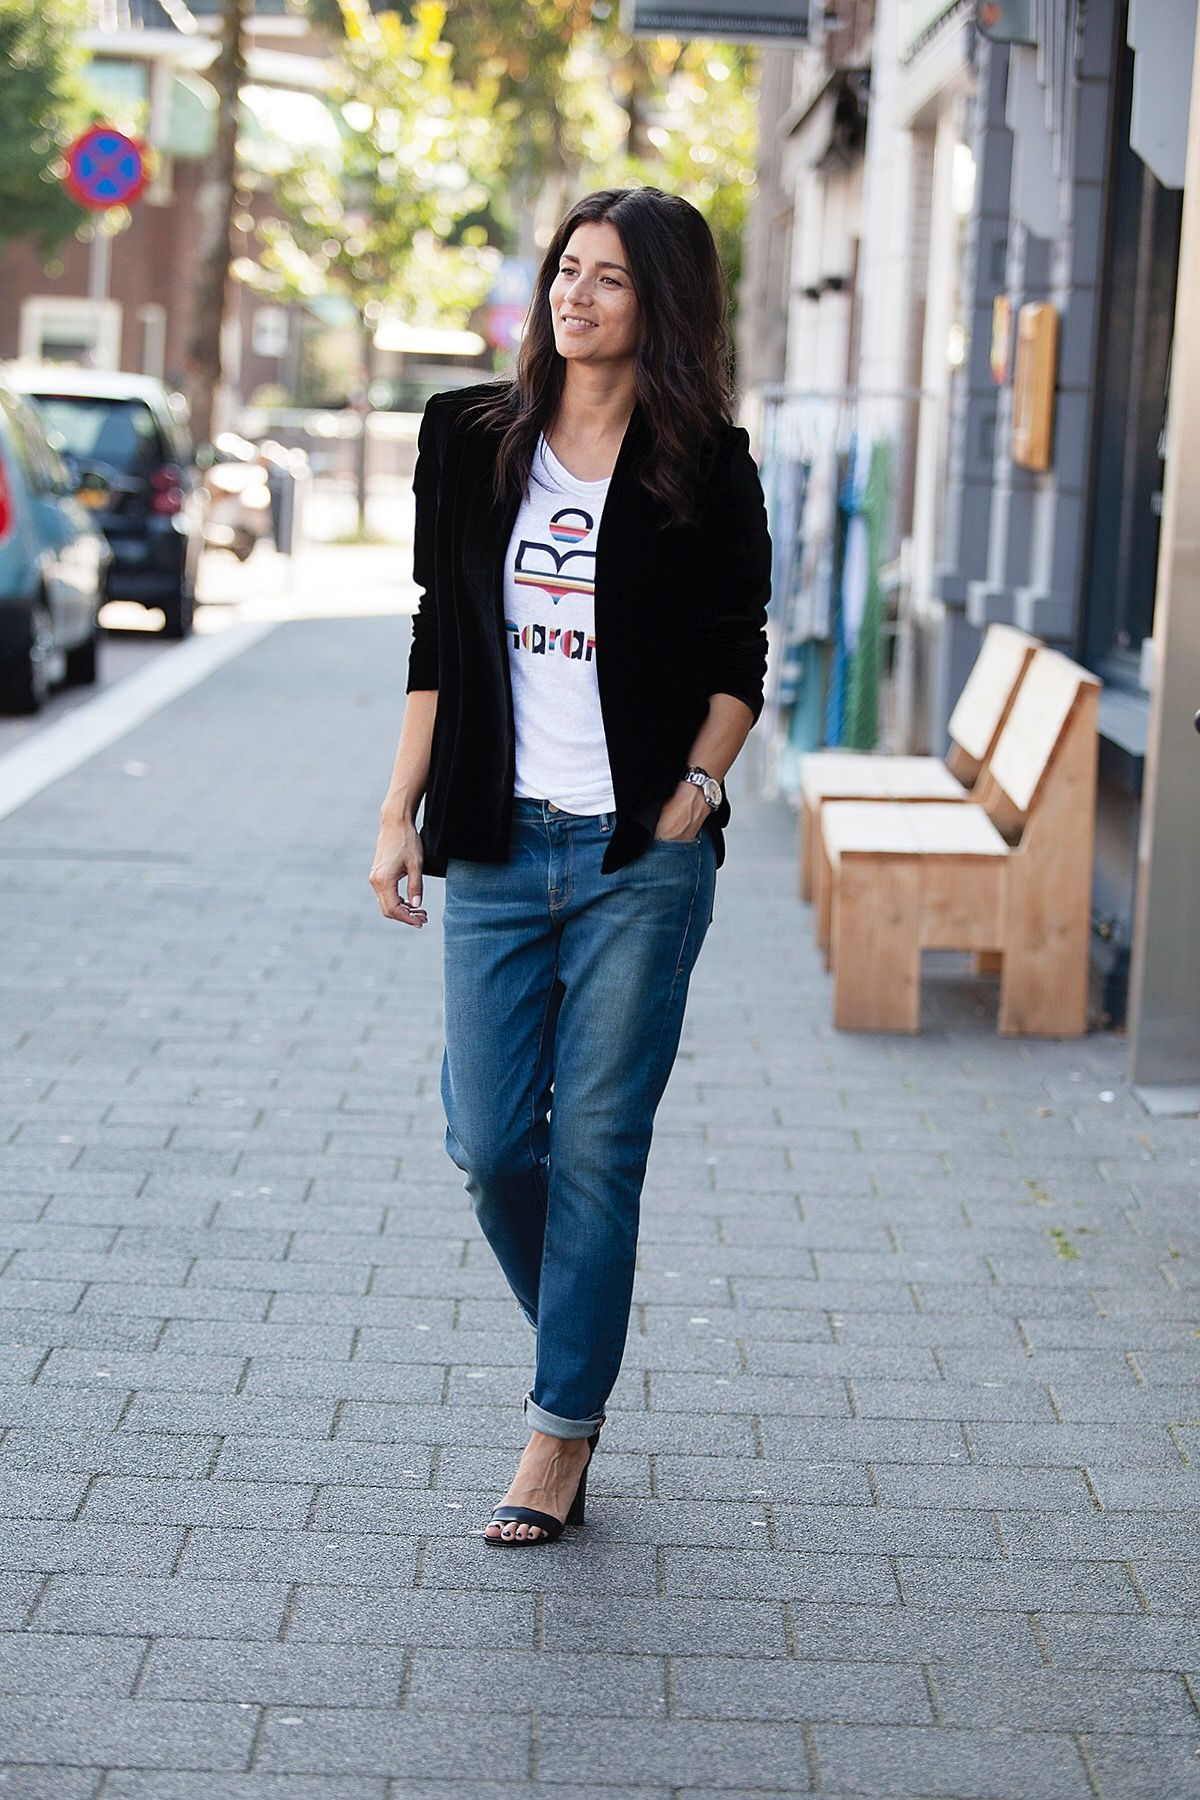 streetstyle fall 2016 masscob black velvet blazer, Isabel Marant linen top, Frame denim BlogForshops for Misses Breda